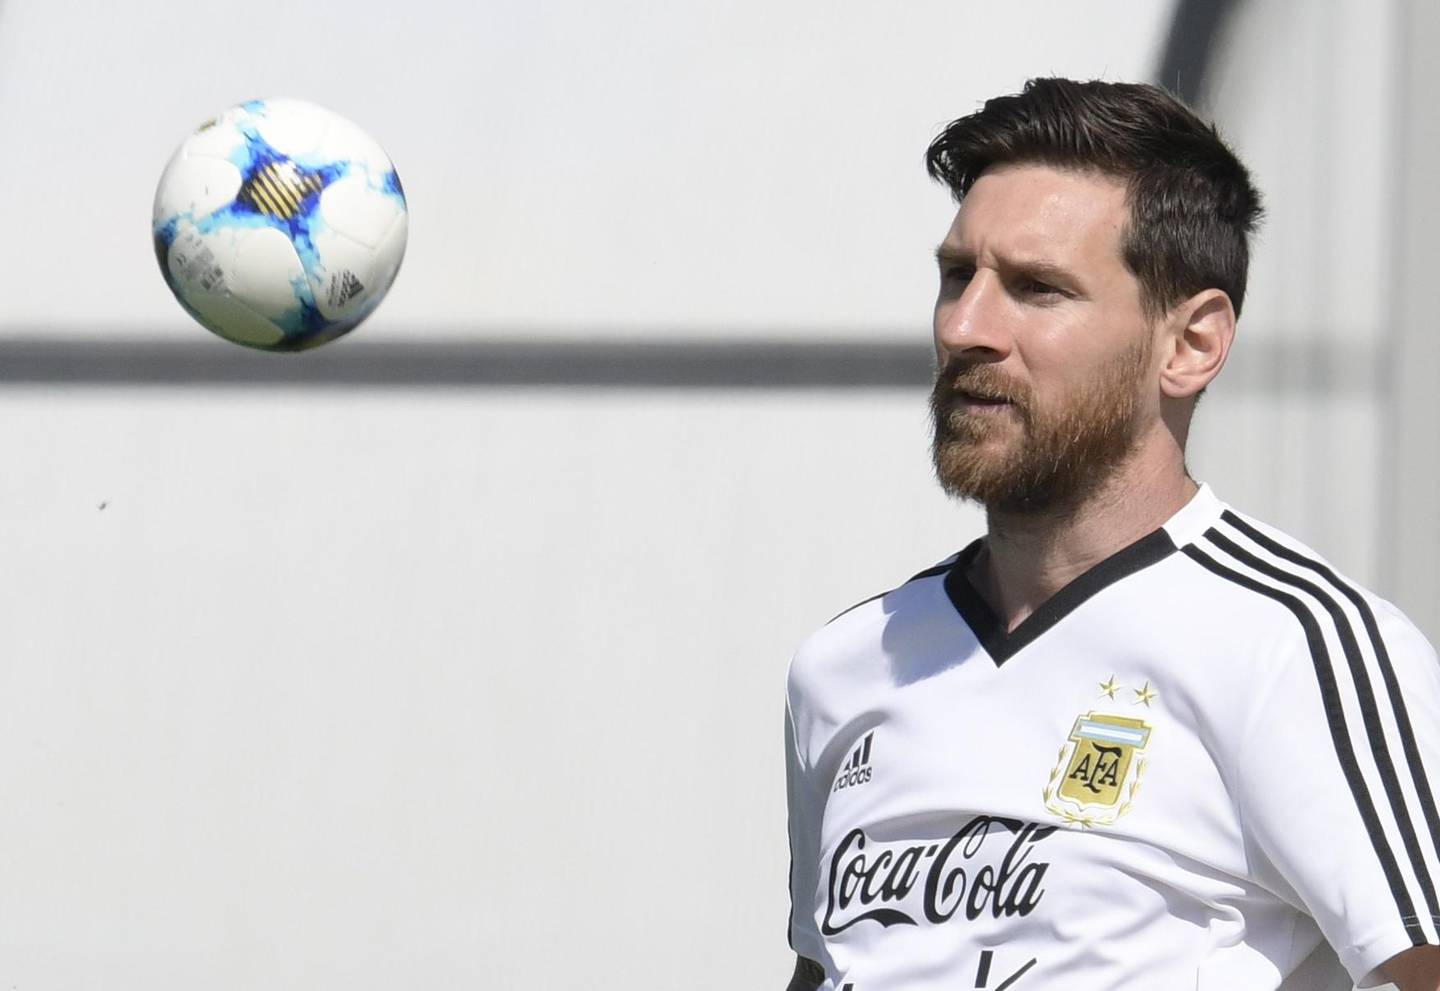 Argentina's forward Lionel Messi eyes a small ball during a training session at the team's base camp in Bronnitsy, on June 25, 2018 on the eve of the team's third game as part of the Russia 2018 World Cup Group D football match. / AFP / JUAN MABROMATA